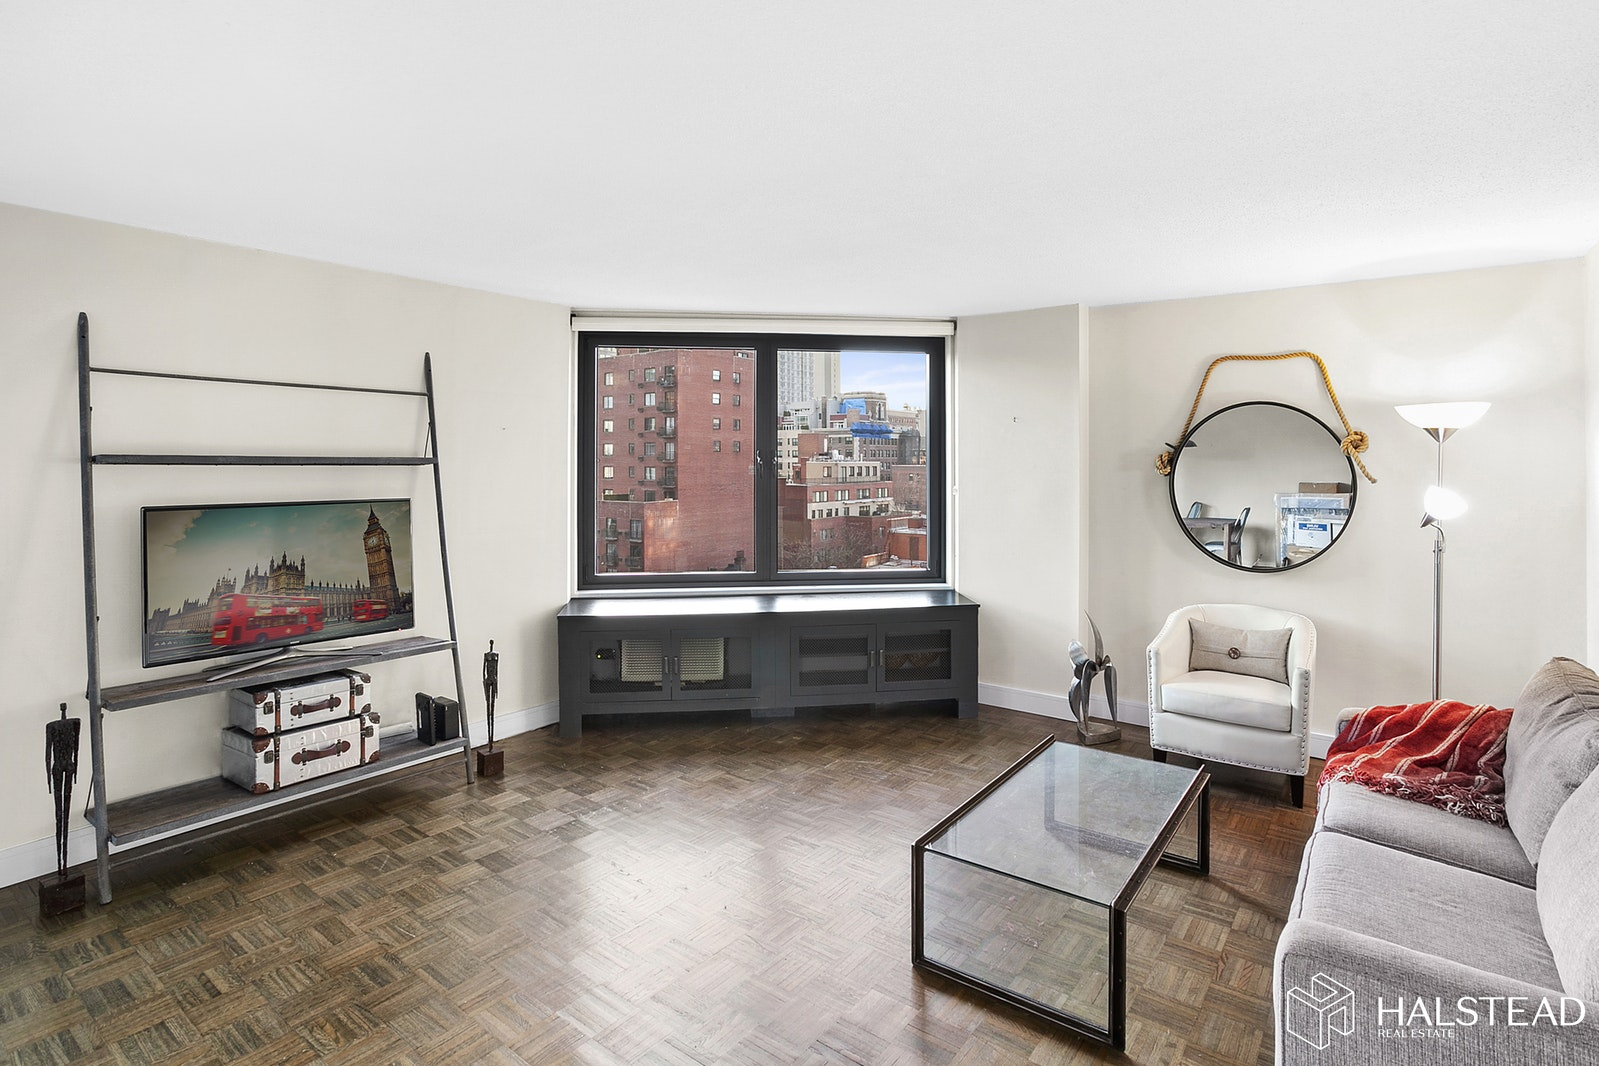 1601 Third Avenue 12c Upper East Side Ny 10128 Id 20021871 For Sale Halstead Real Estate